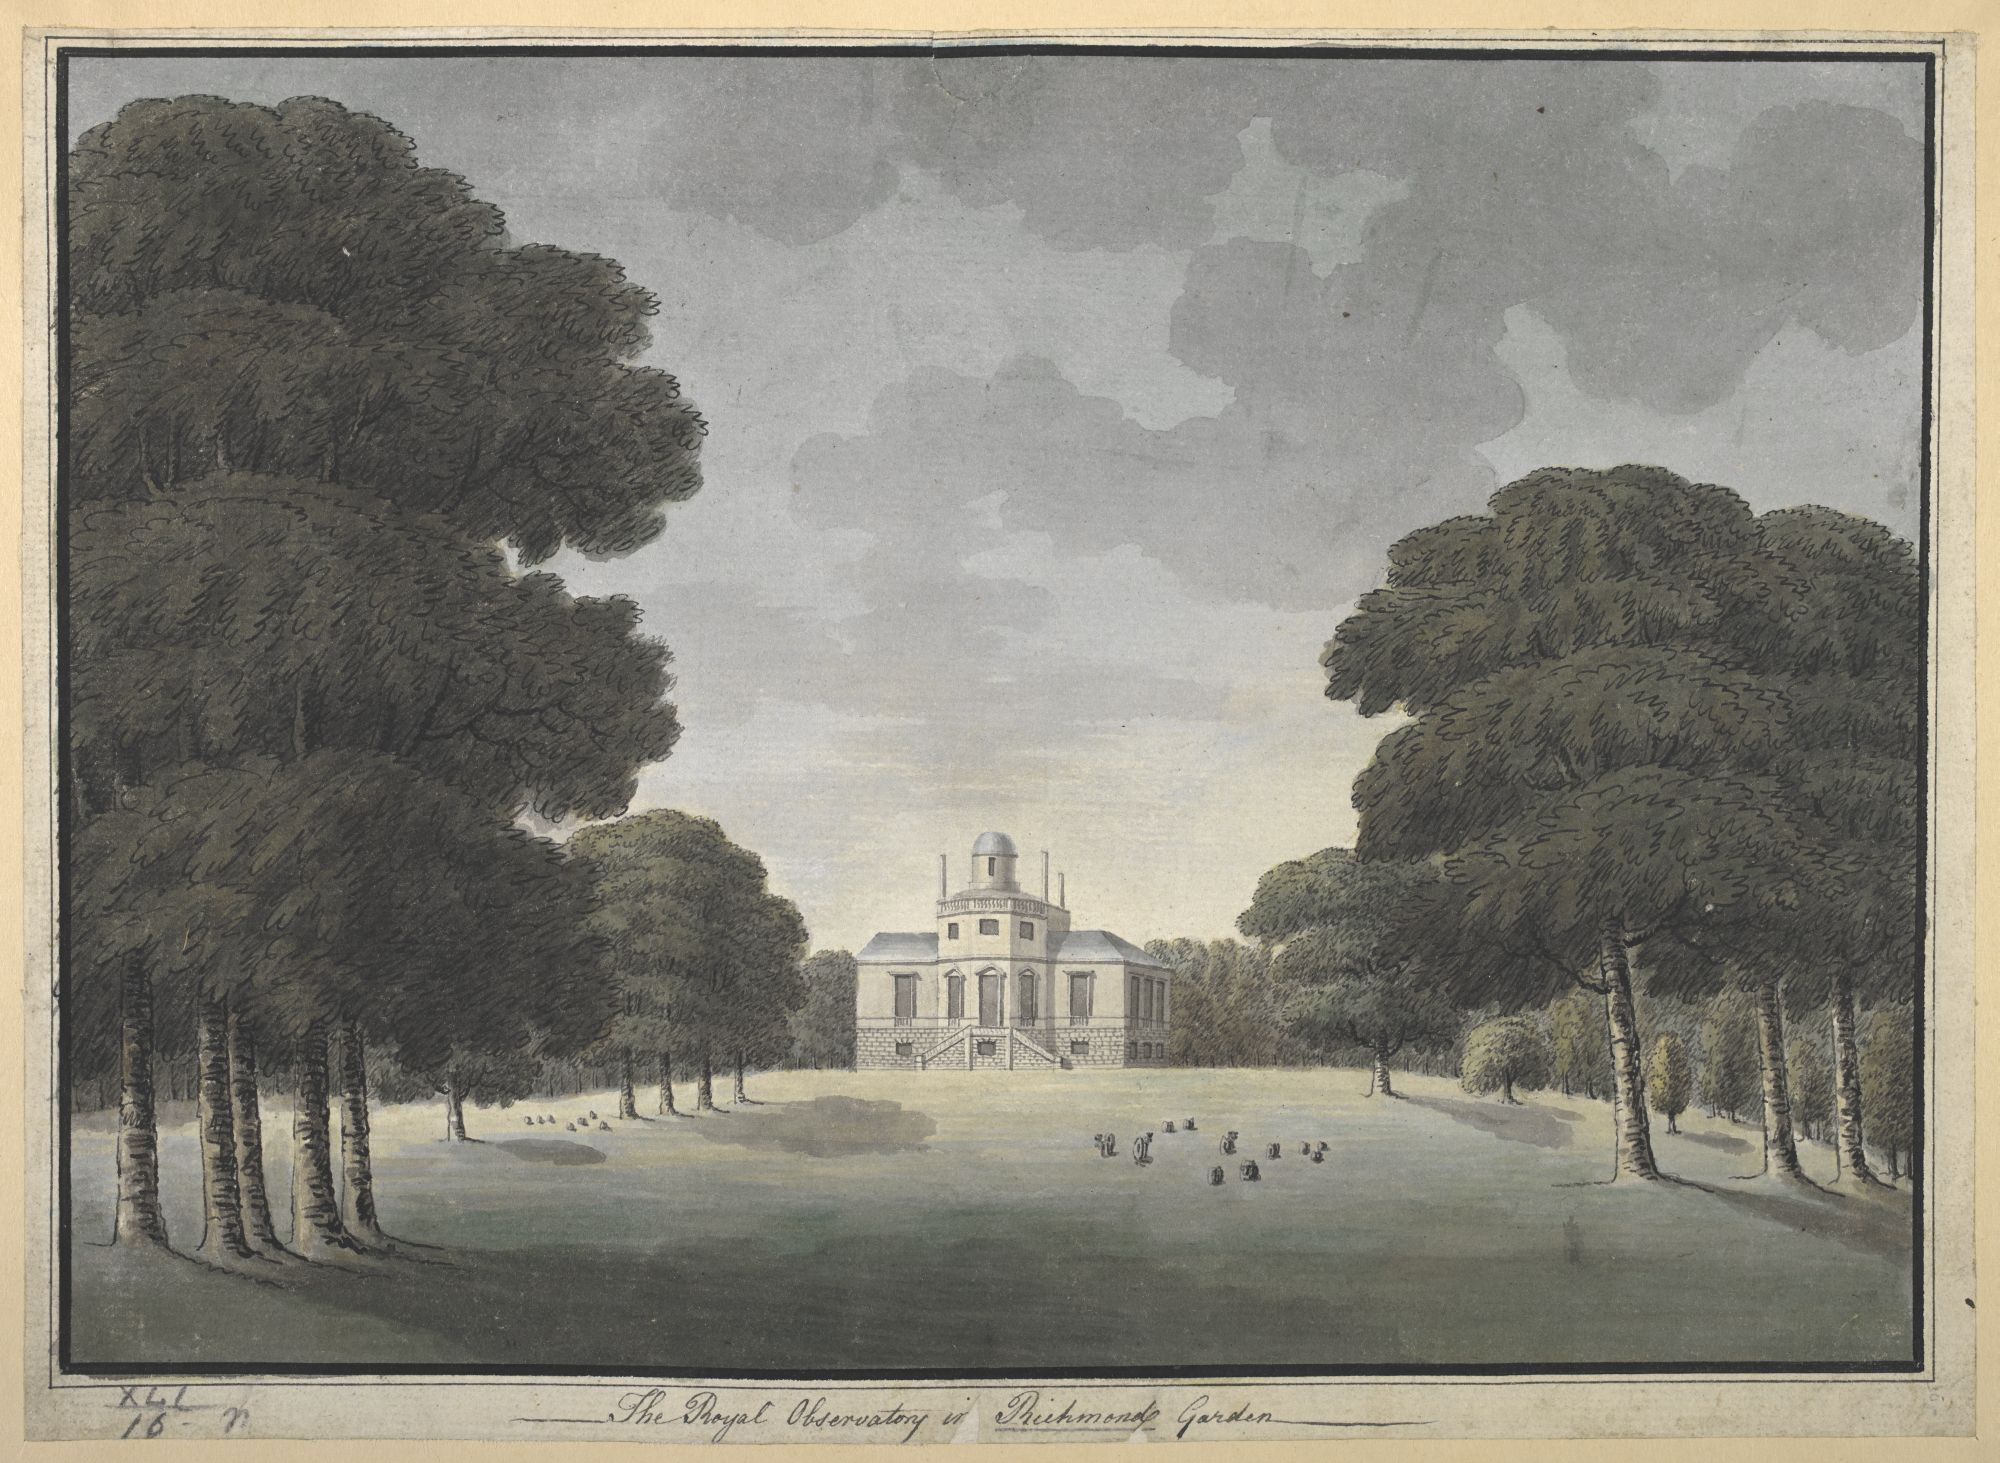 The Royal Observatory in Richmond Garden, by John Spyers.